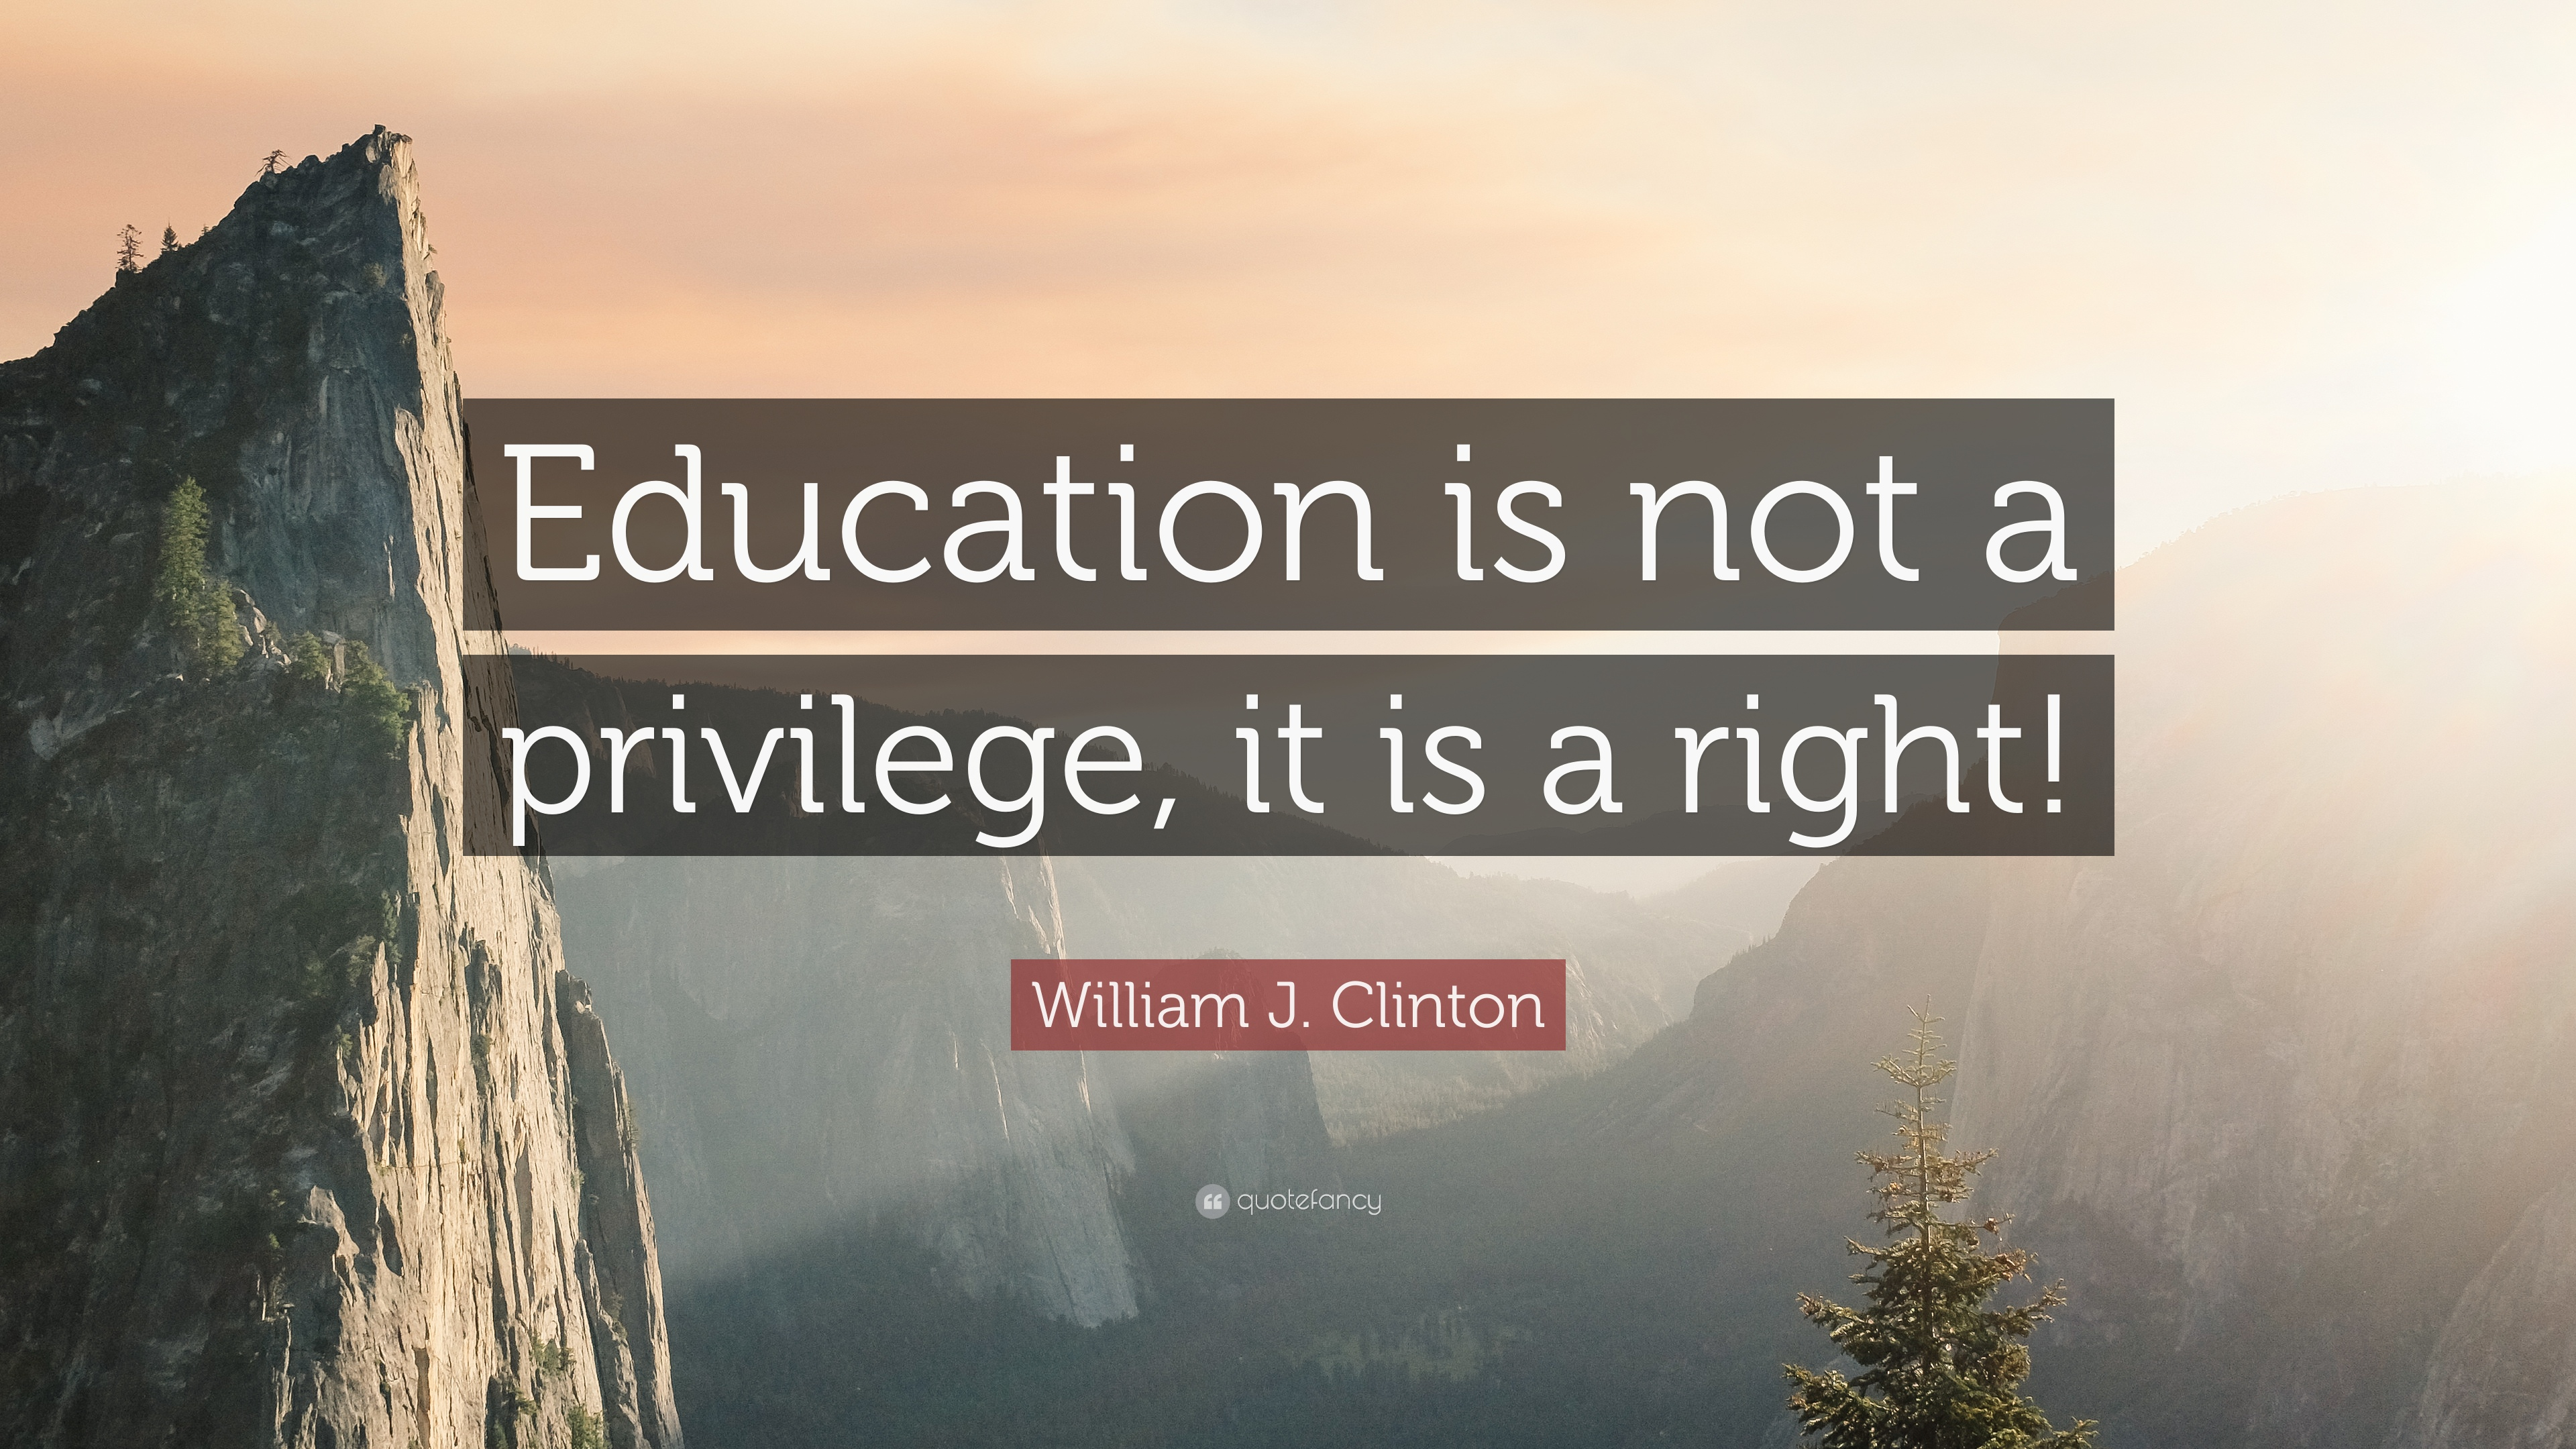 why is education a privilege